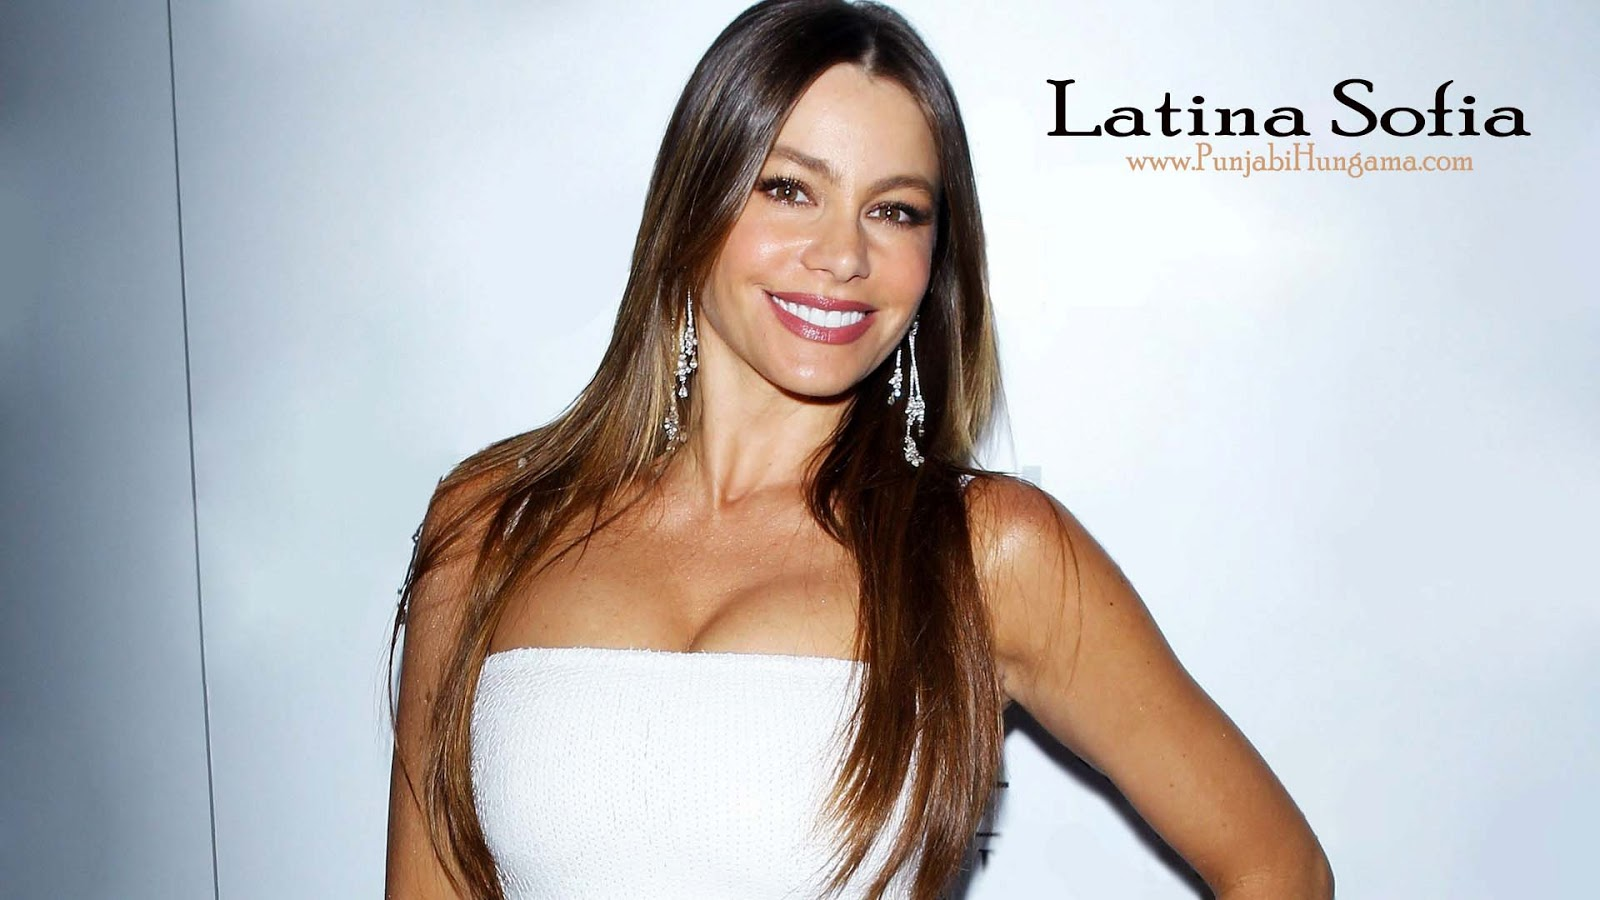 Latina Sofia Hot Wallpapers